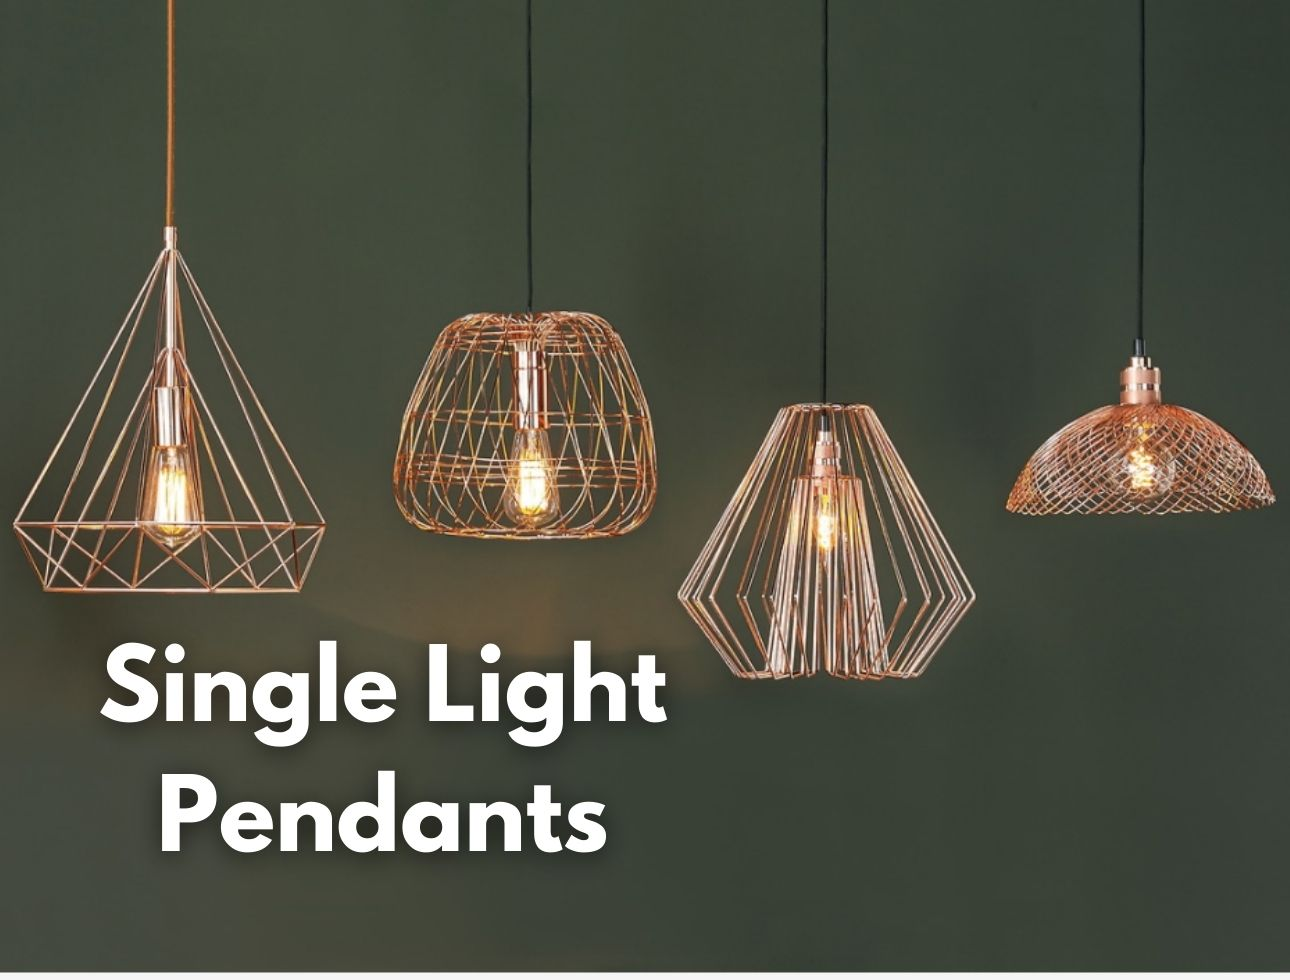 Single Light Pendants